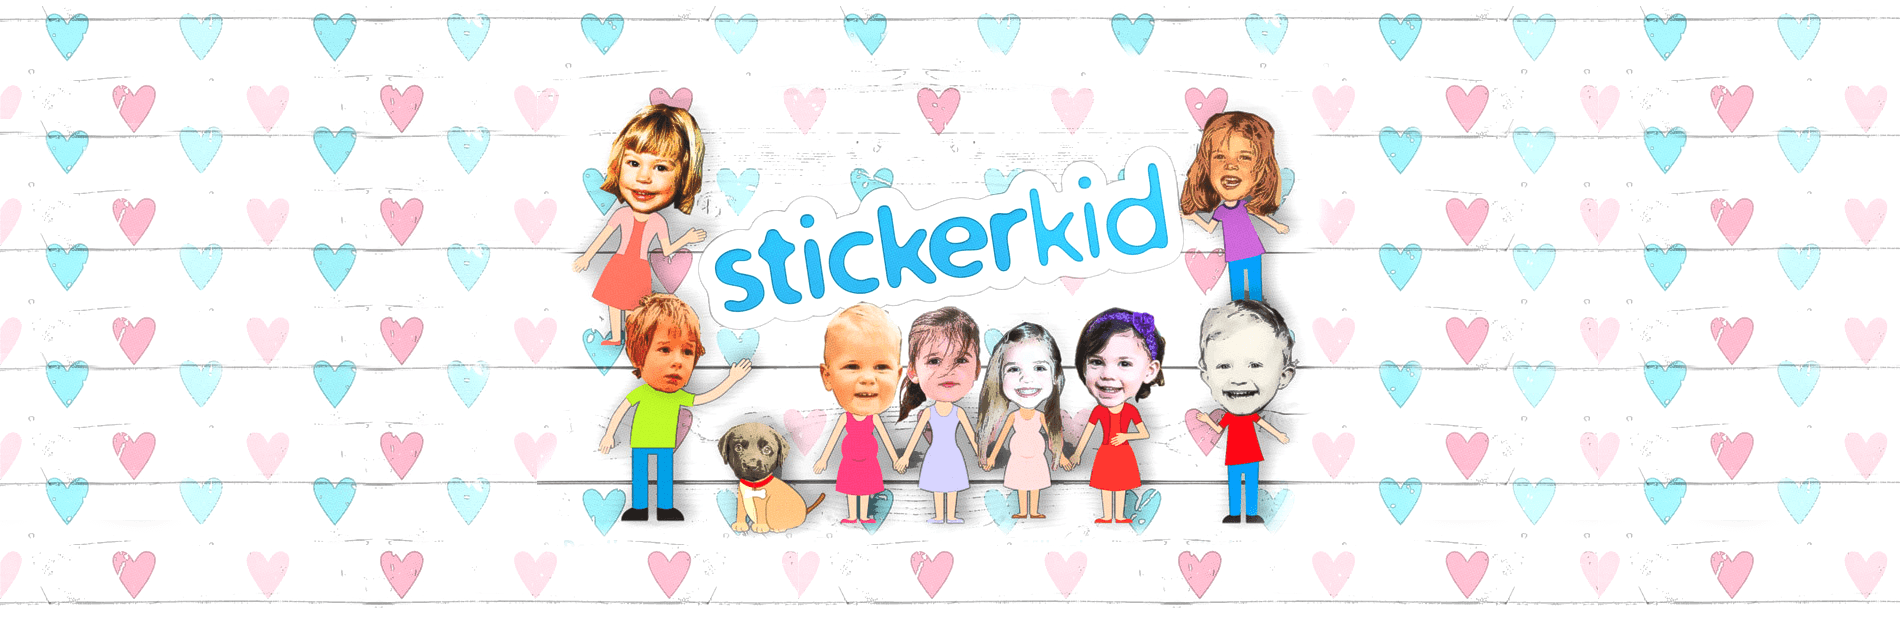 Team Stickerkid